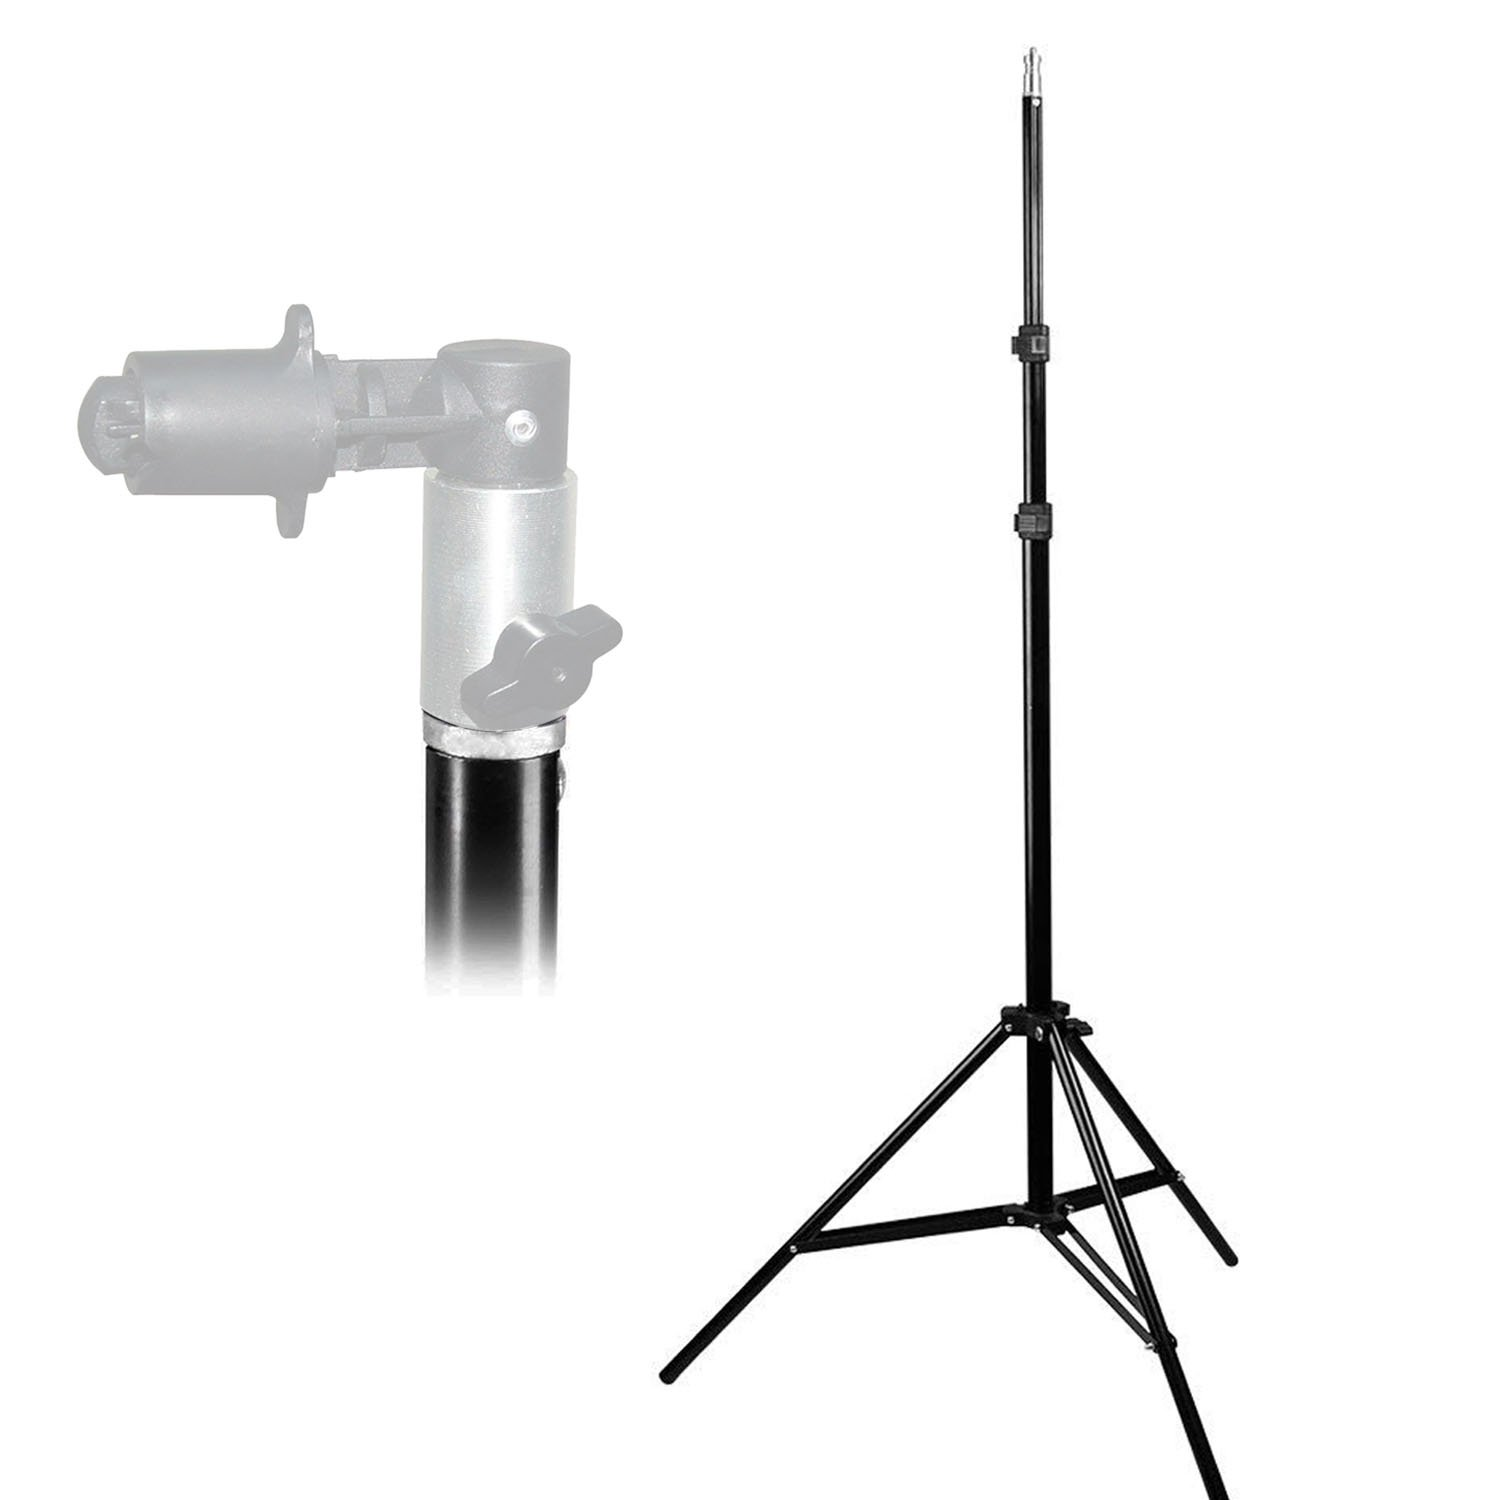 LimoStudio 86'' Photo Video Studio Aluminum Adjustable Light Stand Heavy Duty Tripod, AGG2344